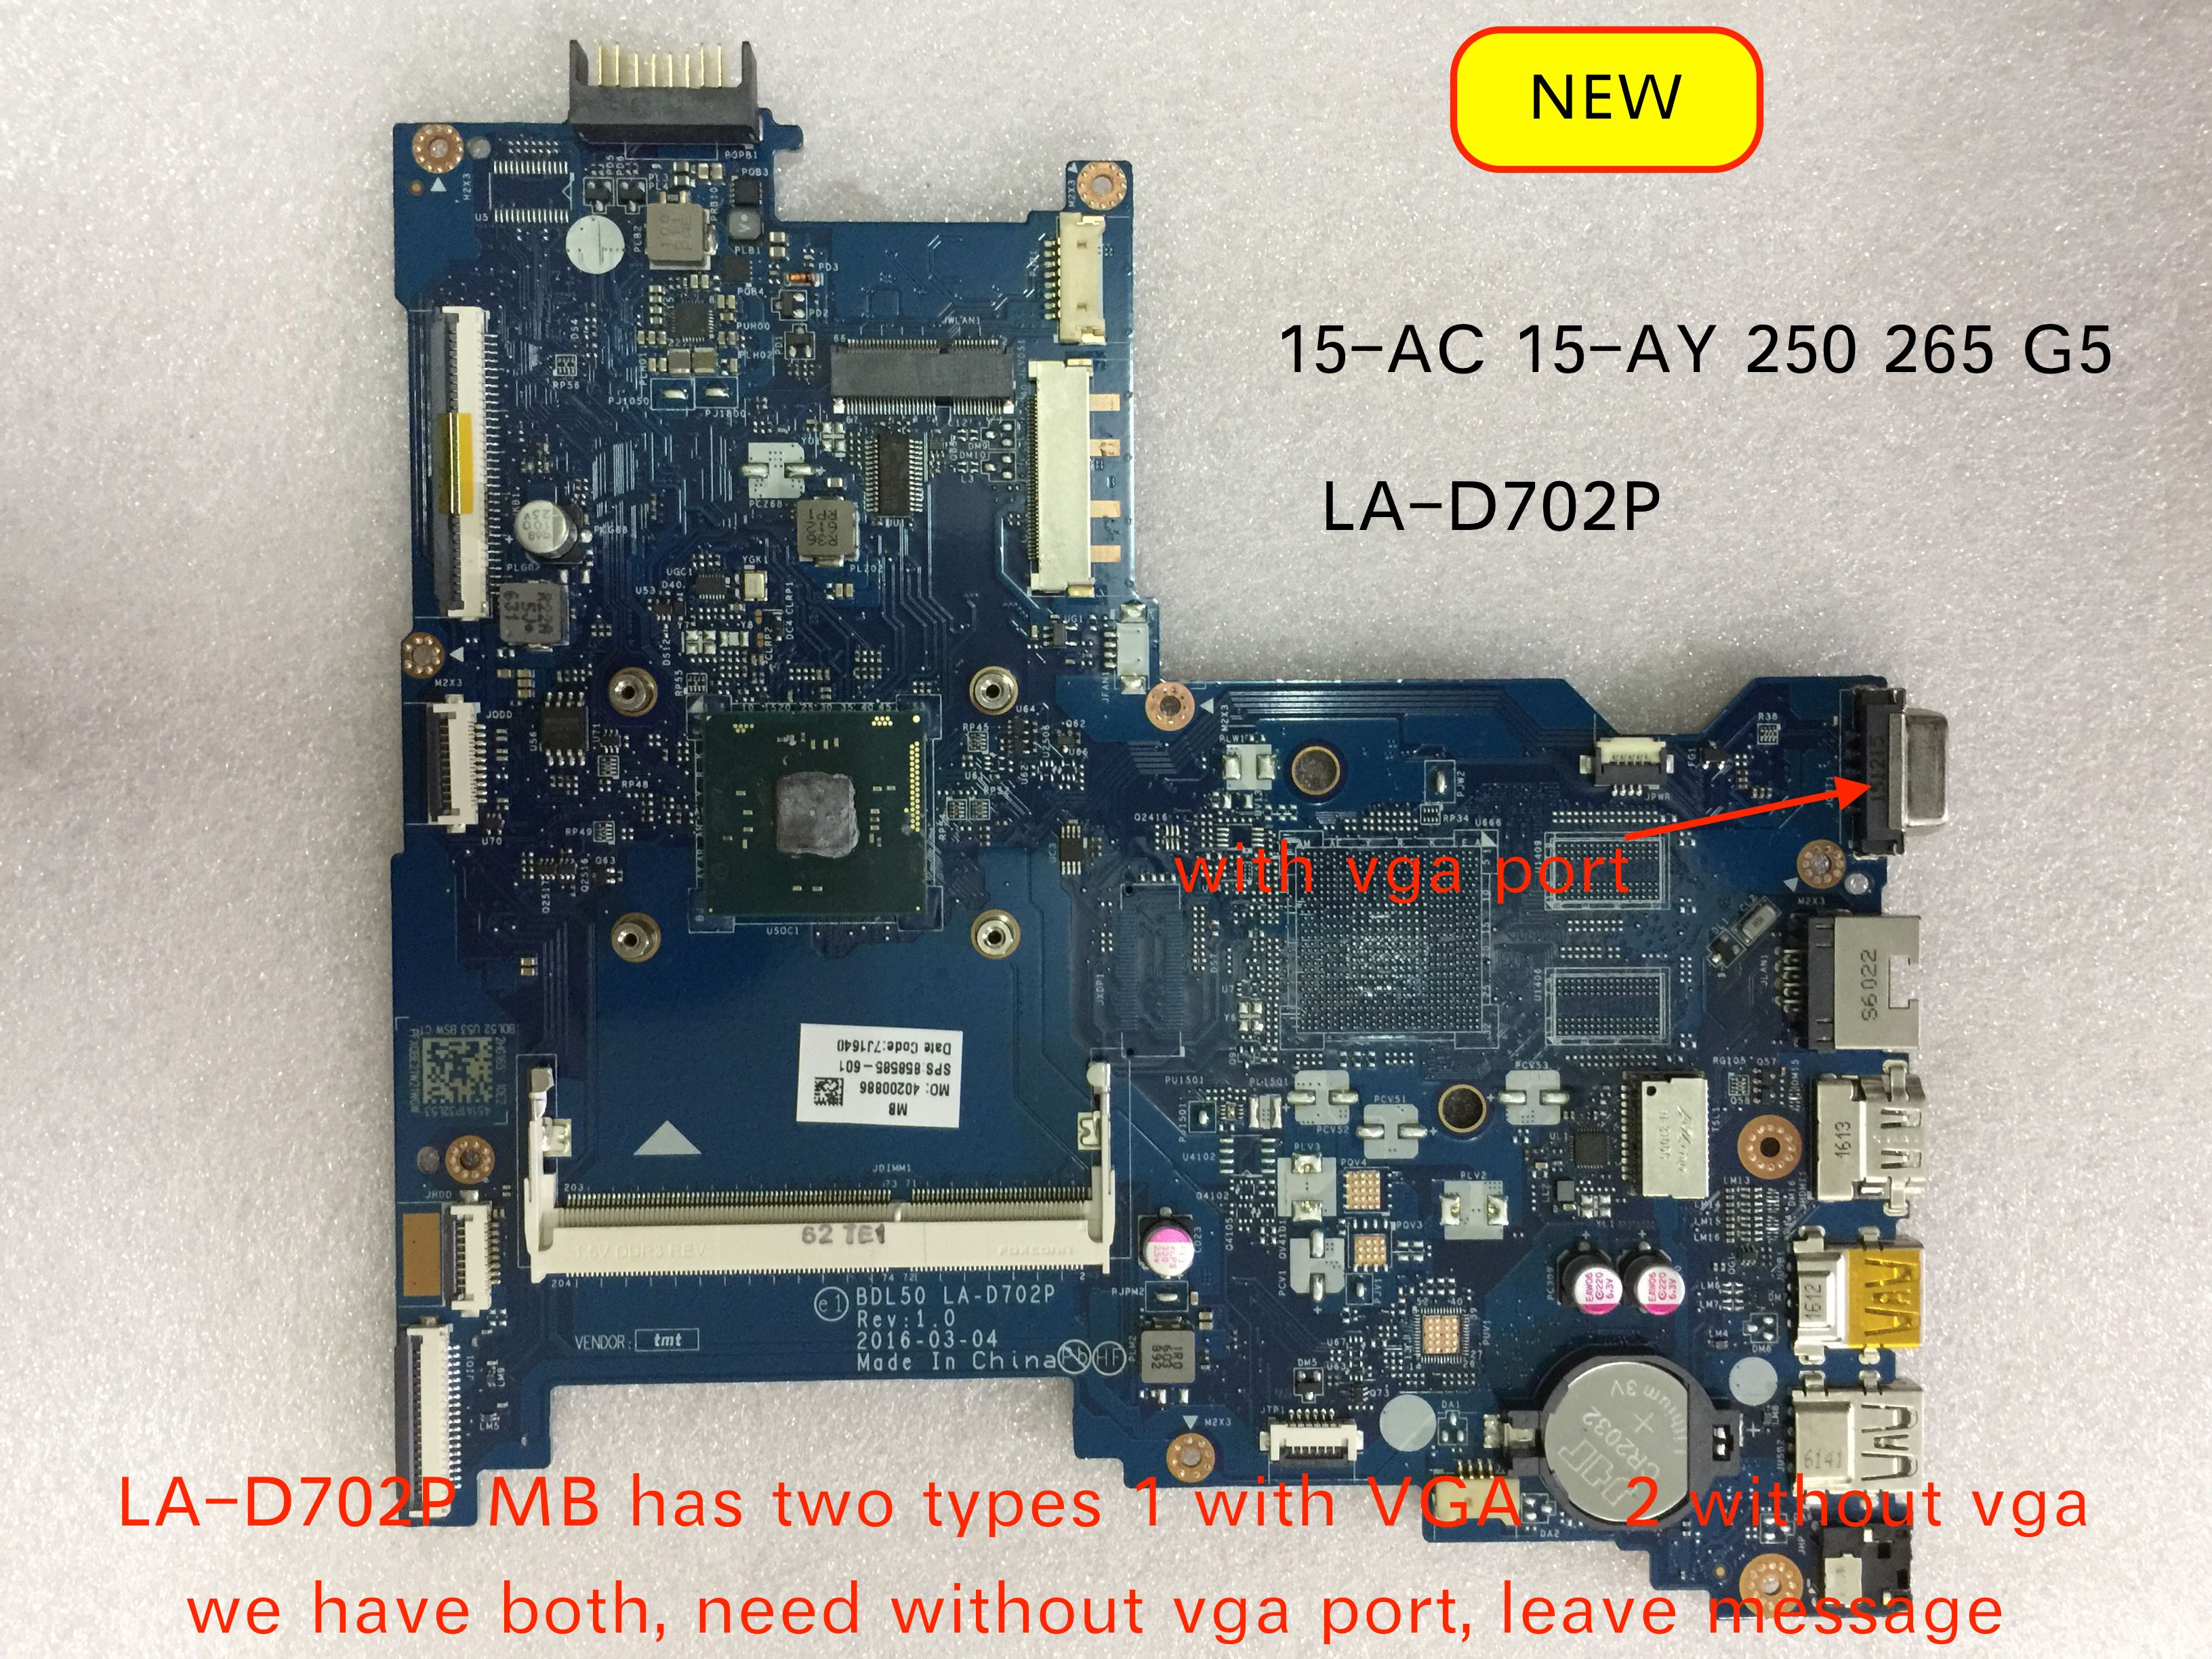 100% Working 858585-001 BDL50 LA-D702P For 15-AC 15-AY 250 256 G5 Motherboard